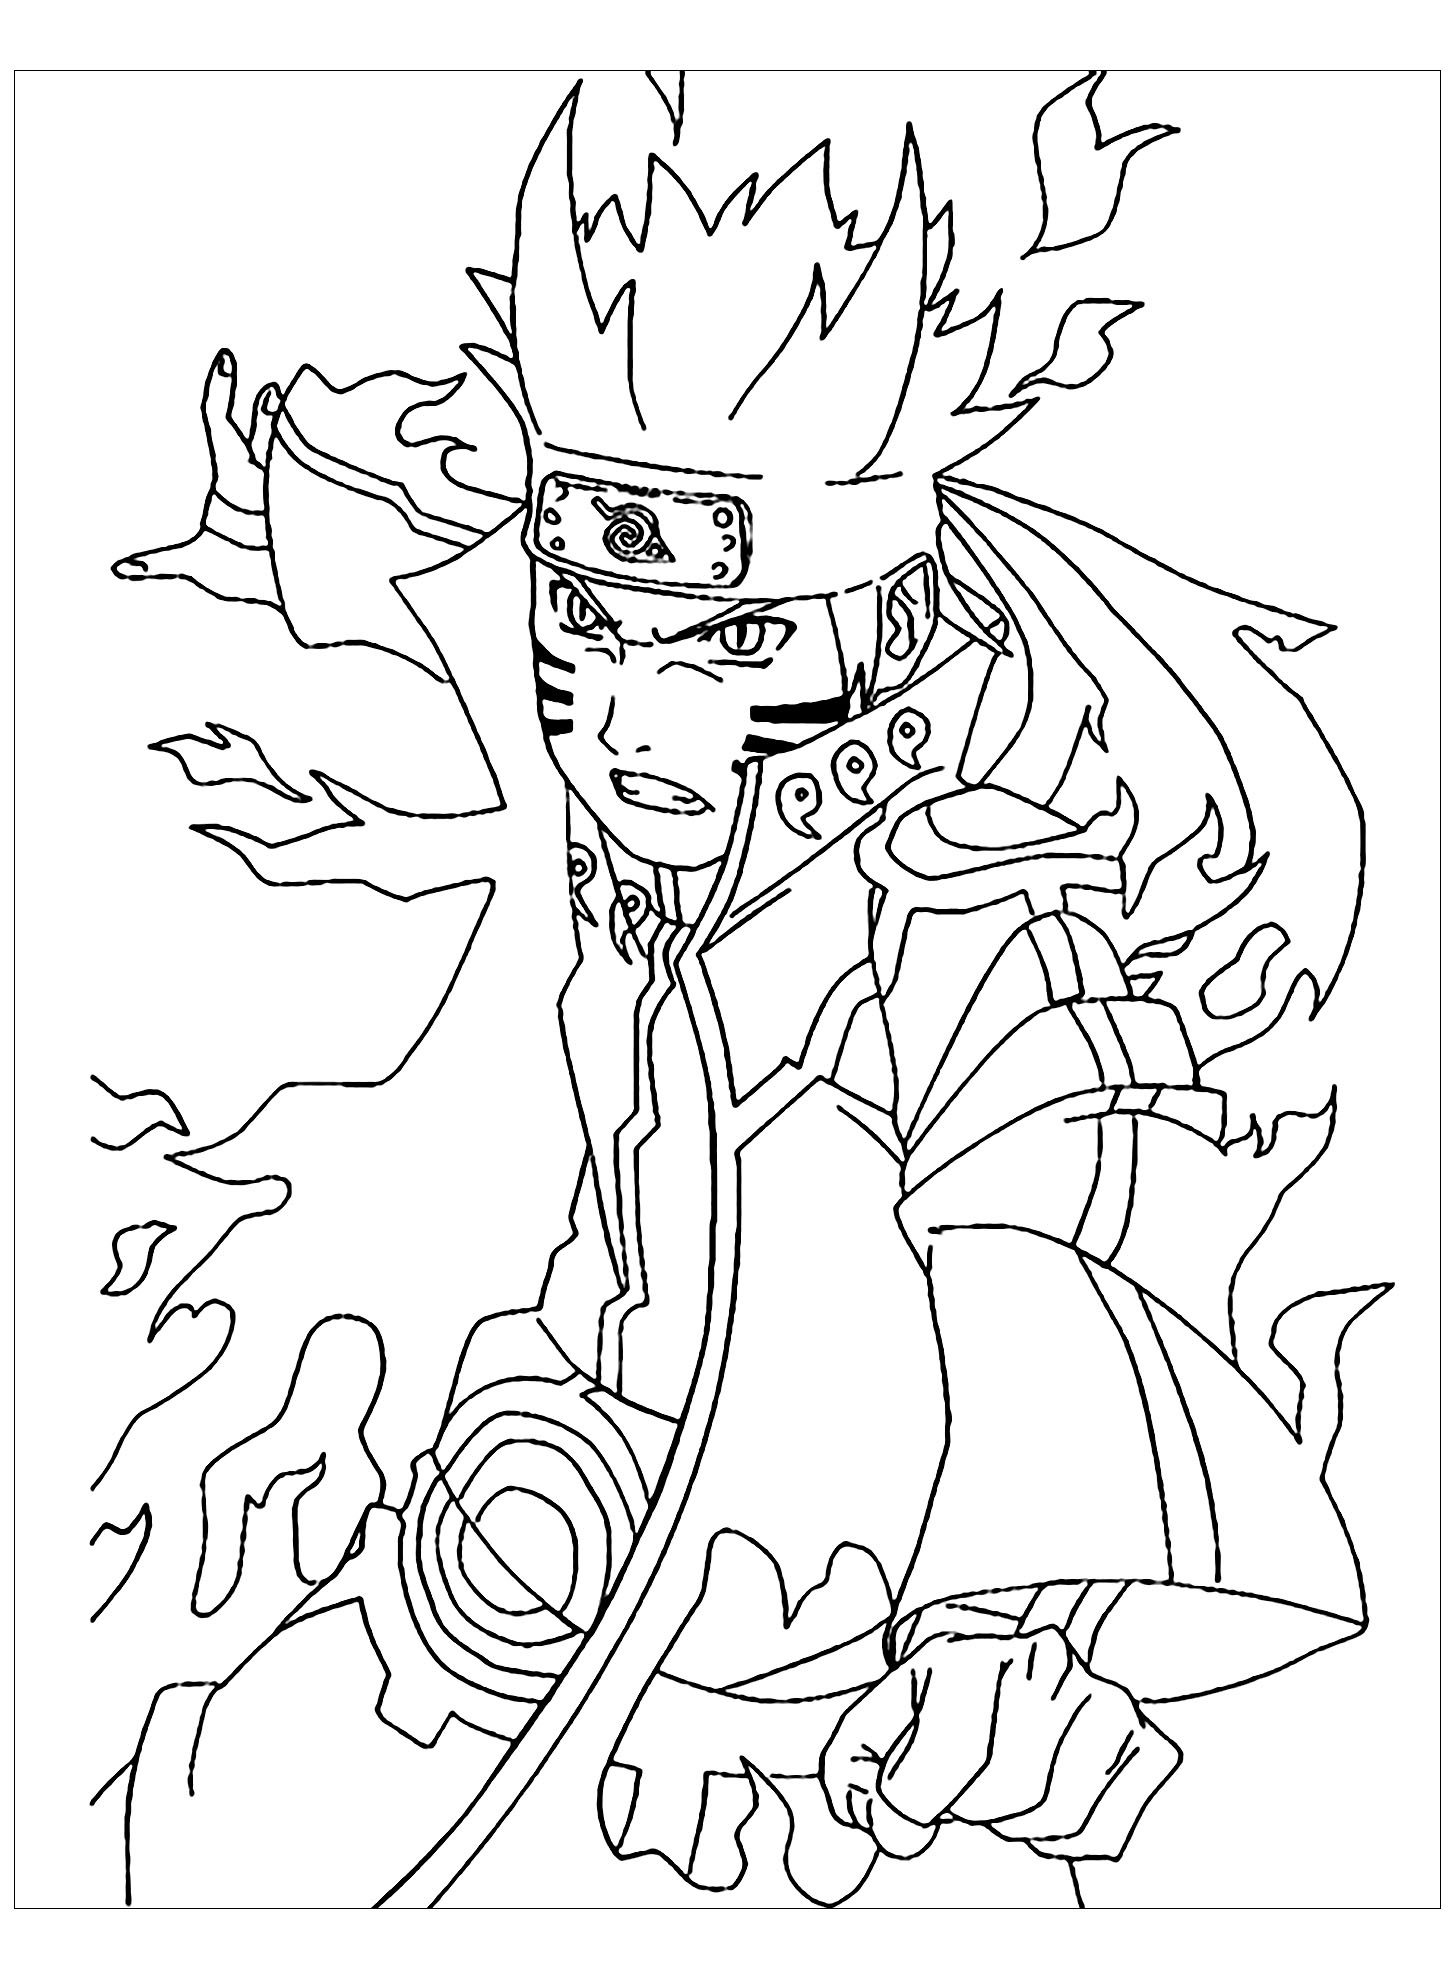 Naruto to download - Naruto Kids Coloring Pages